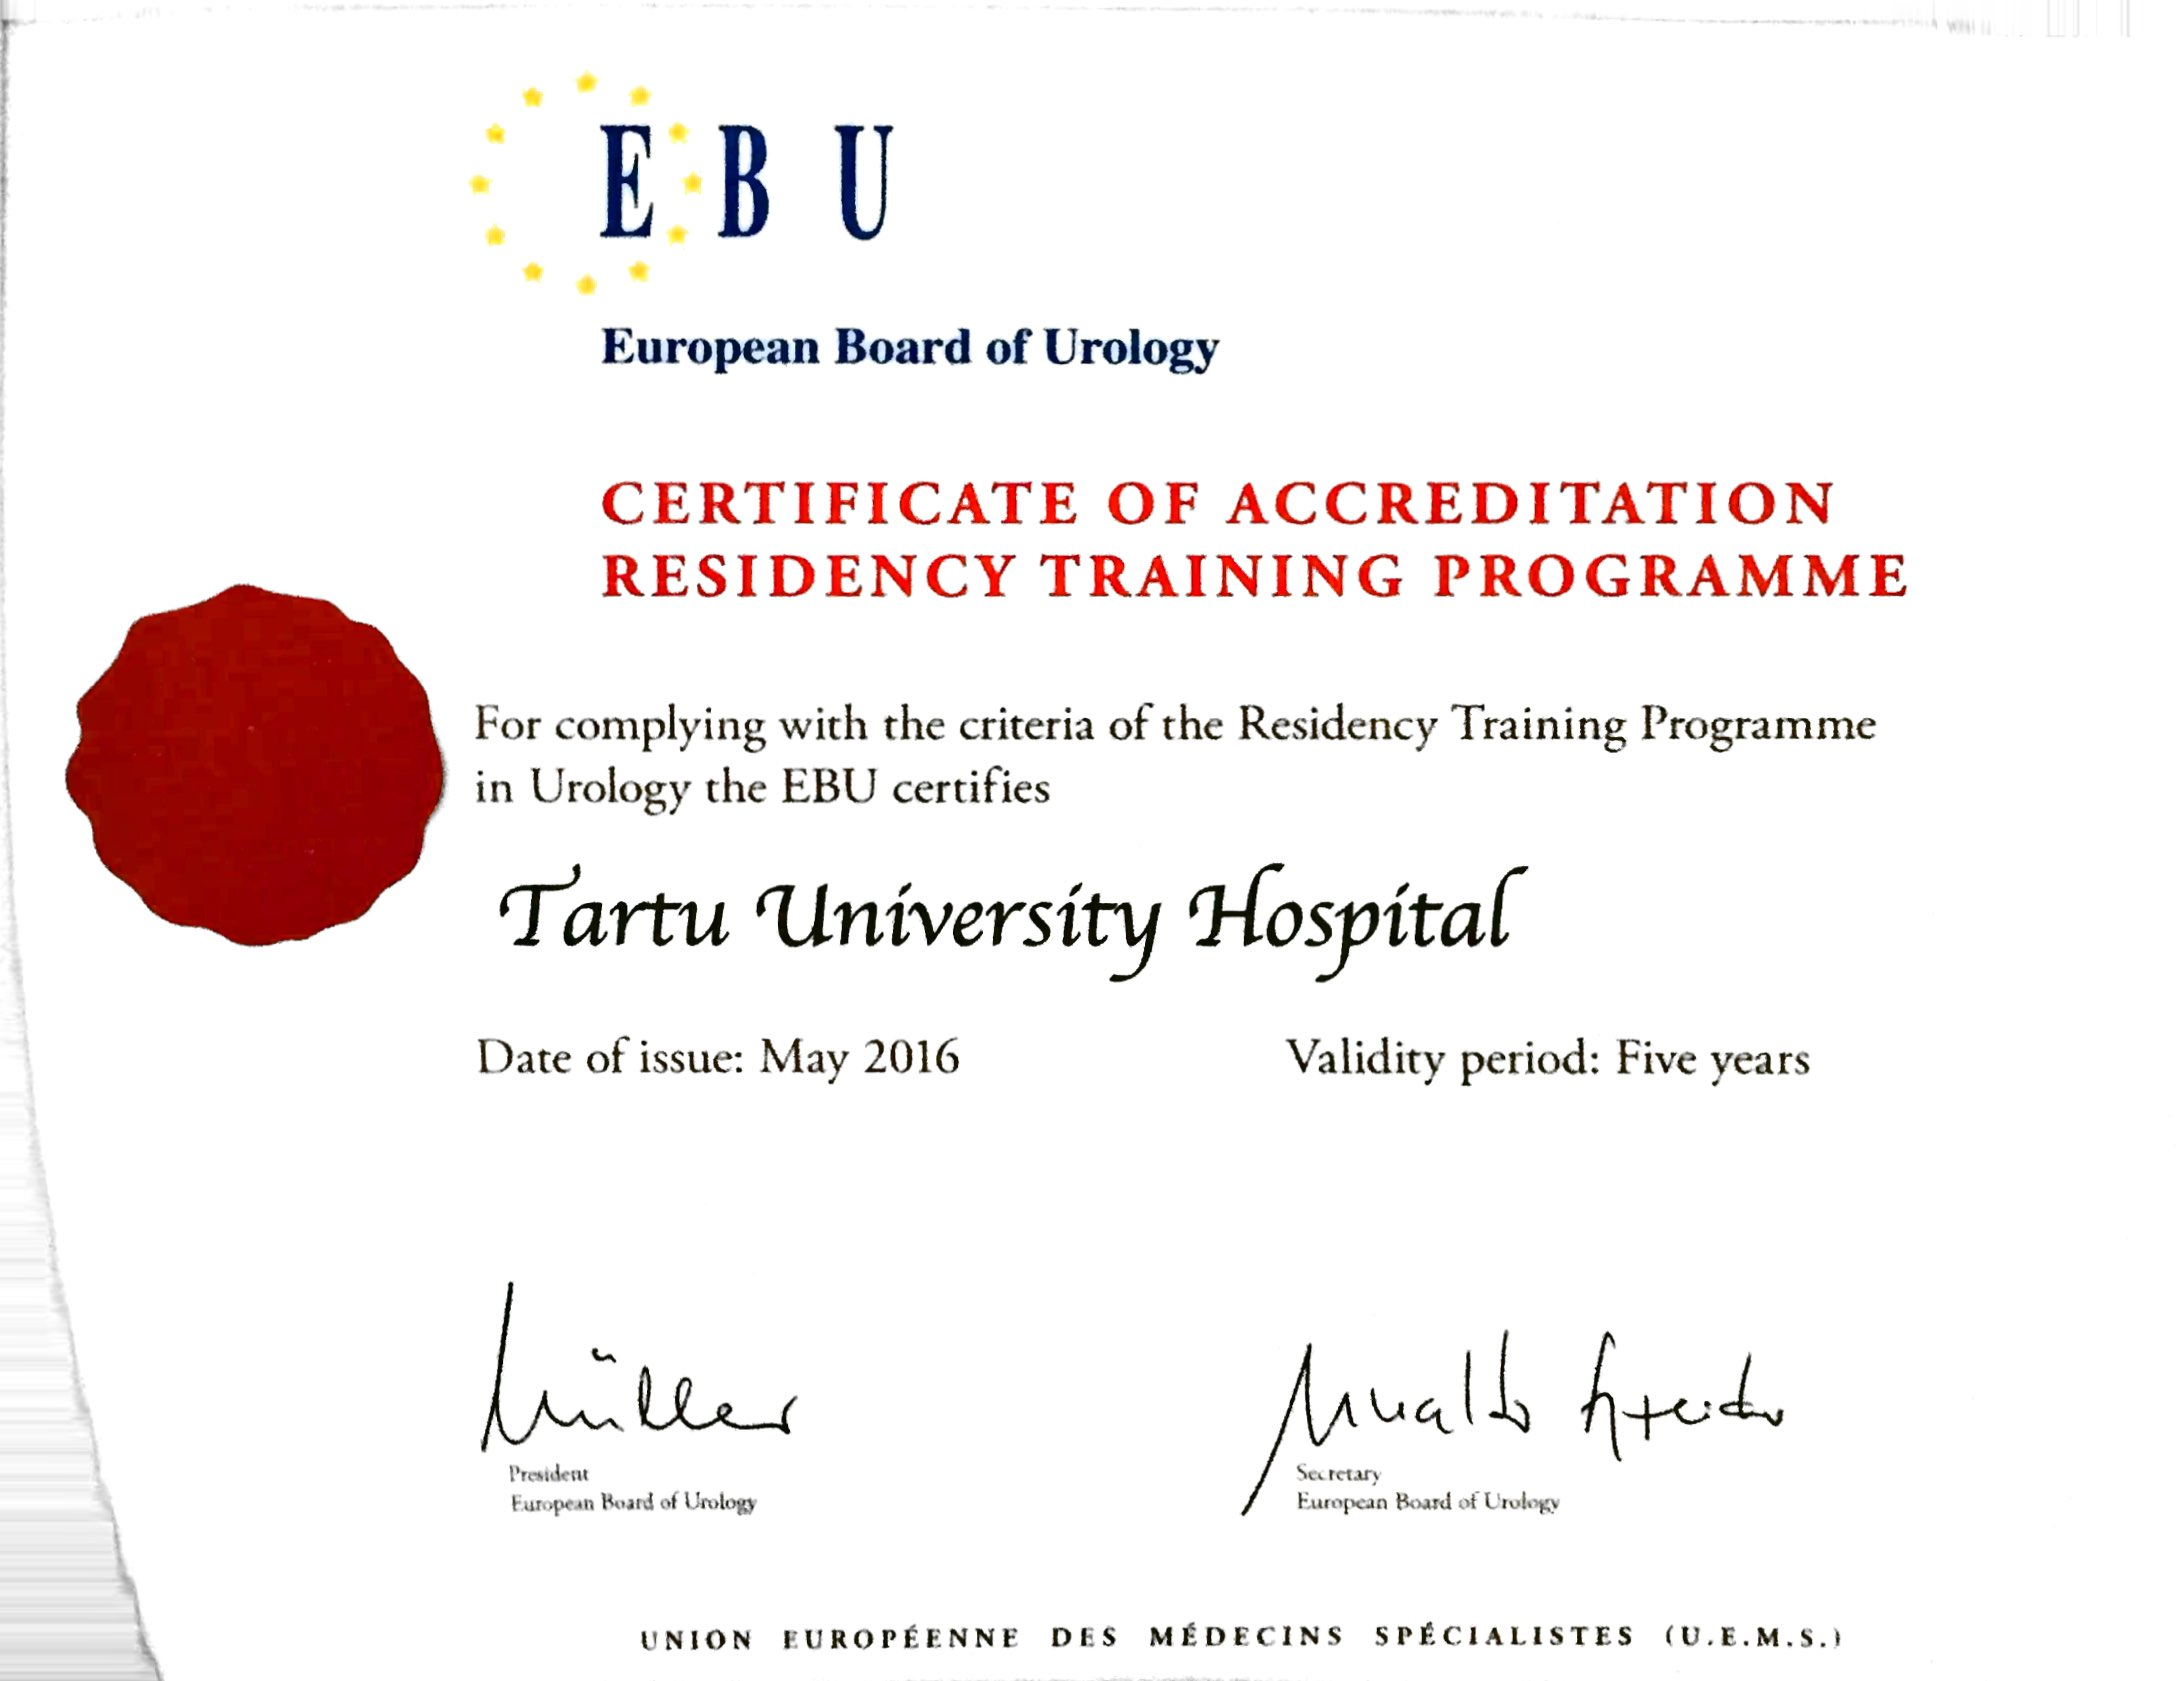 Certification on Accreditation Residency Training Programme